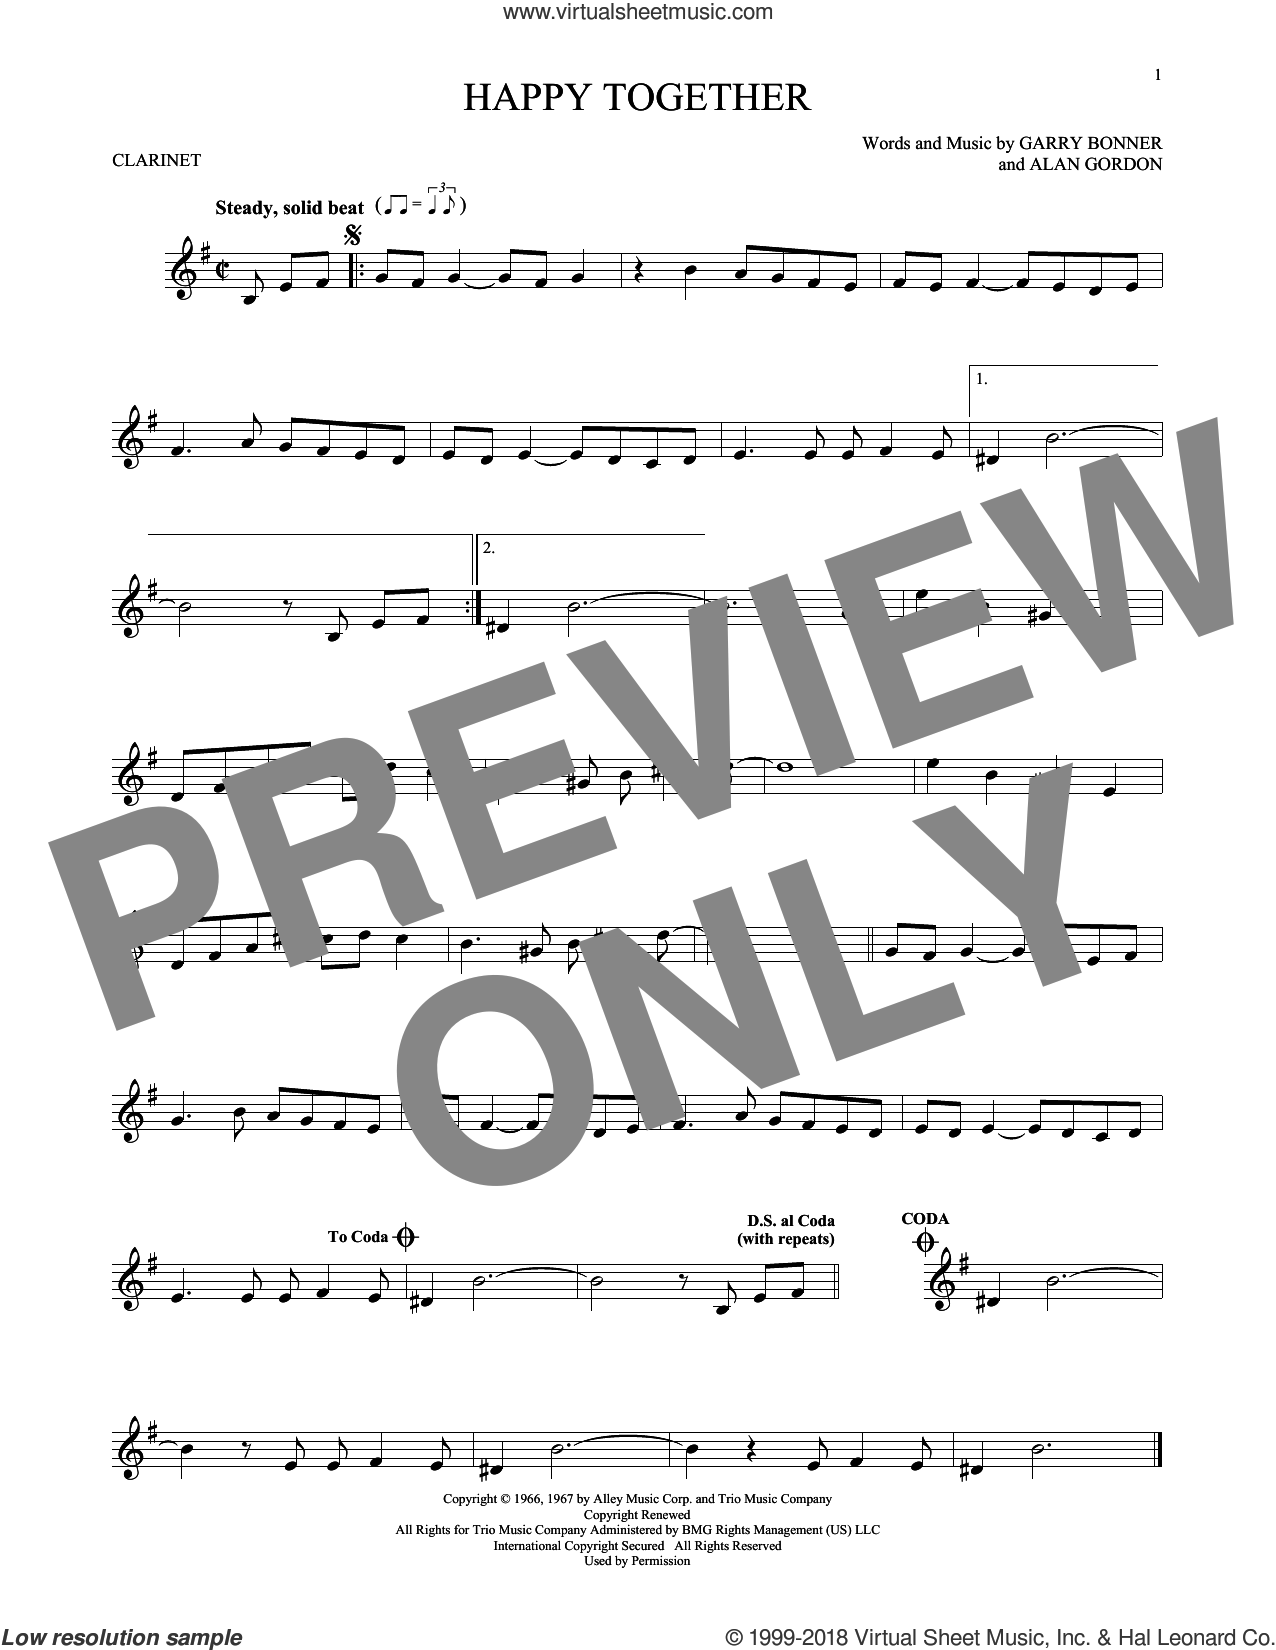 Happy Together sheet music for clarinet solo by The Turtles, Alan Gordon and Garry Bonner, intermediate skill level